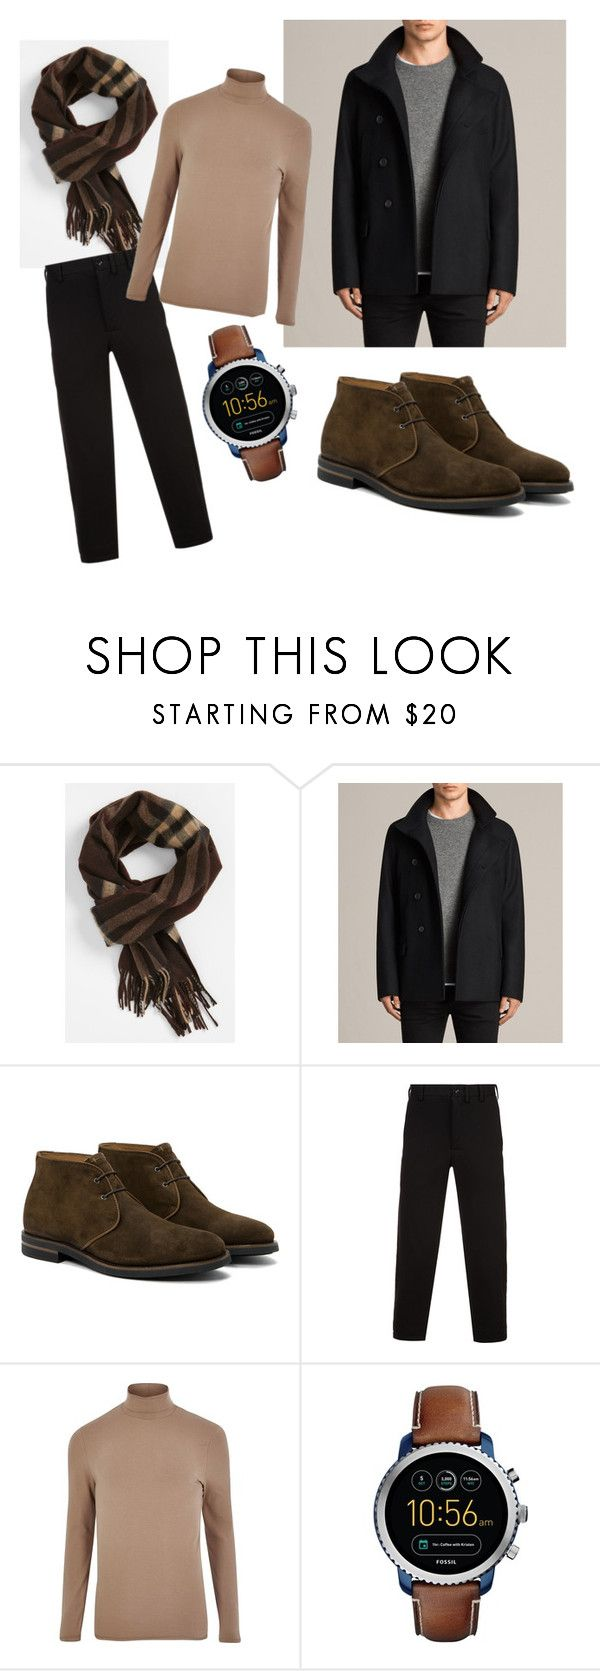 """""""Untitled #81"""" by guseva2504 ❤ liked on Polyvore featuring Burberry, AllSaints, Aquatalia by Marvin K., Yohji Yamamoto, River Island, FOSSIL, men's fashion and menswear"""